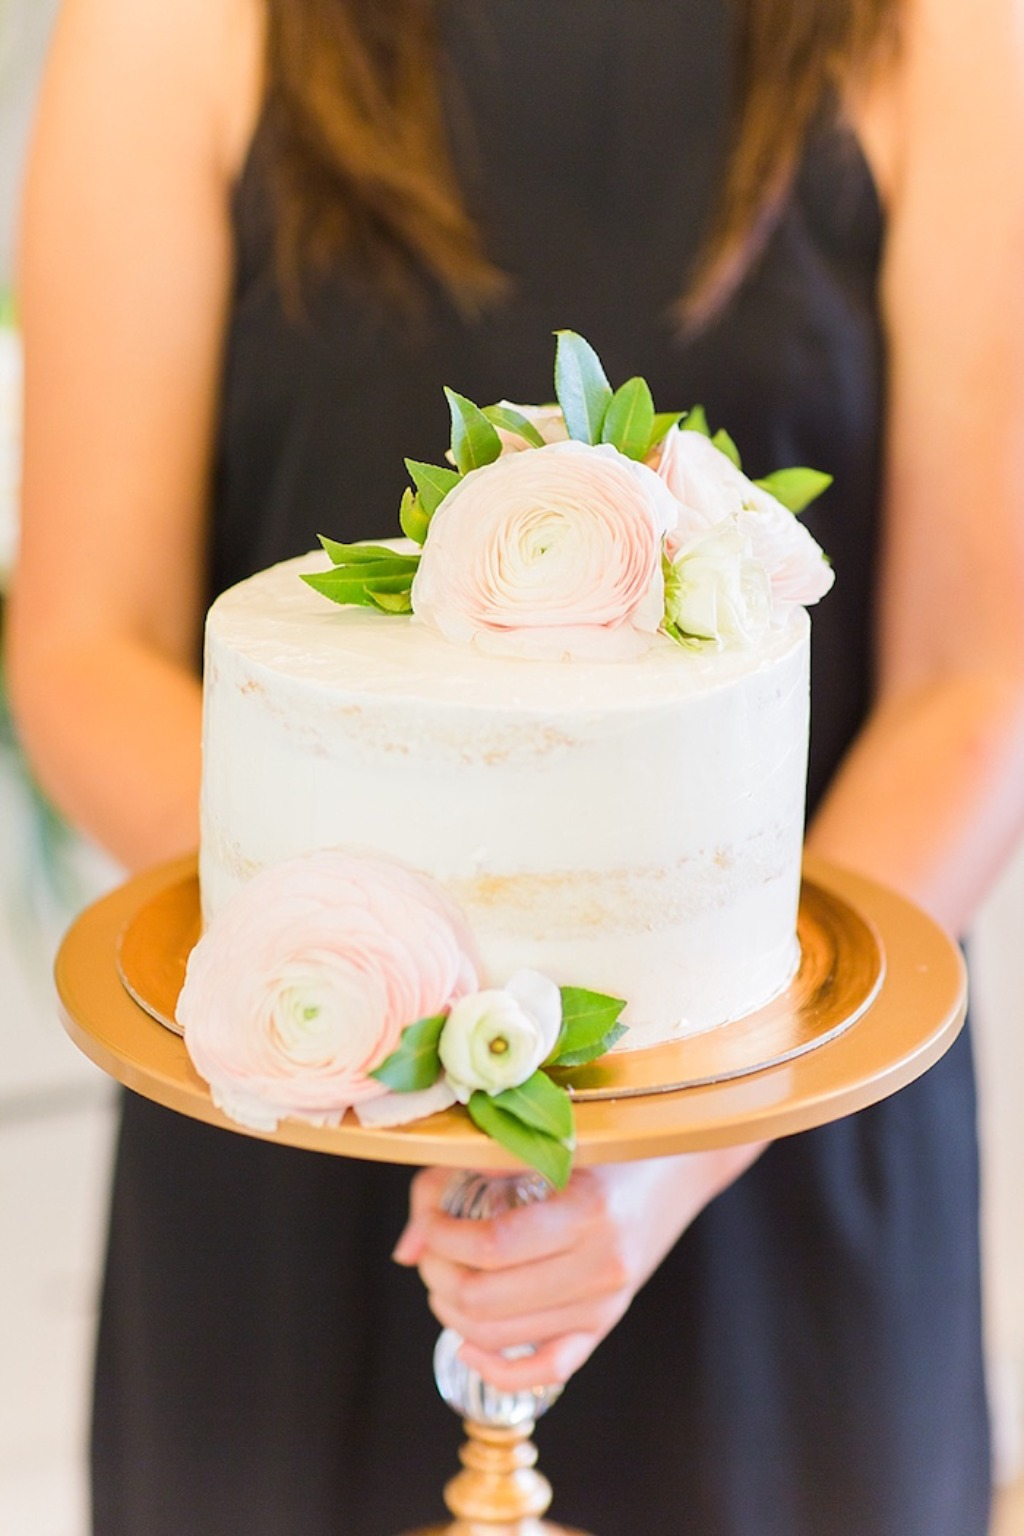 Wedding Cake Stands & More! Opulent Treasures has been creating wedding cakes for over 22 years with seeds of love and passion